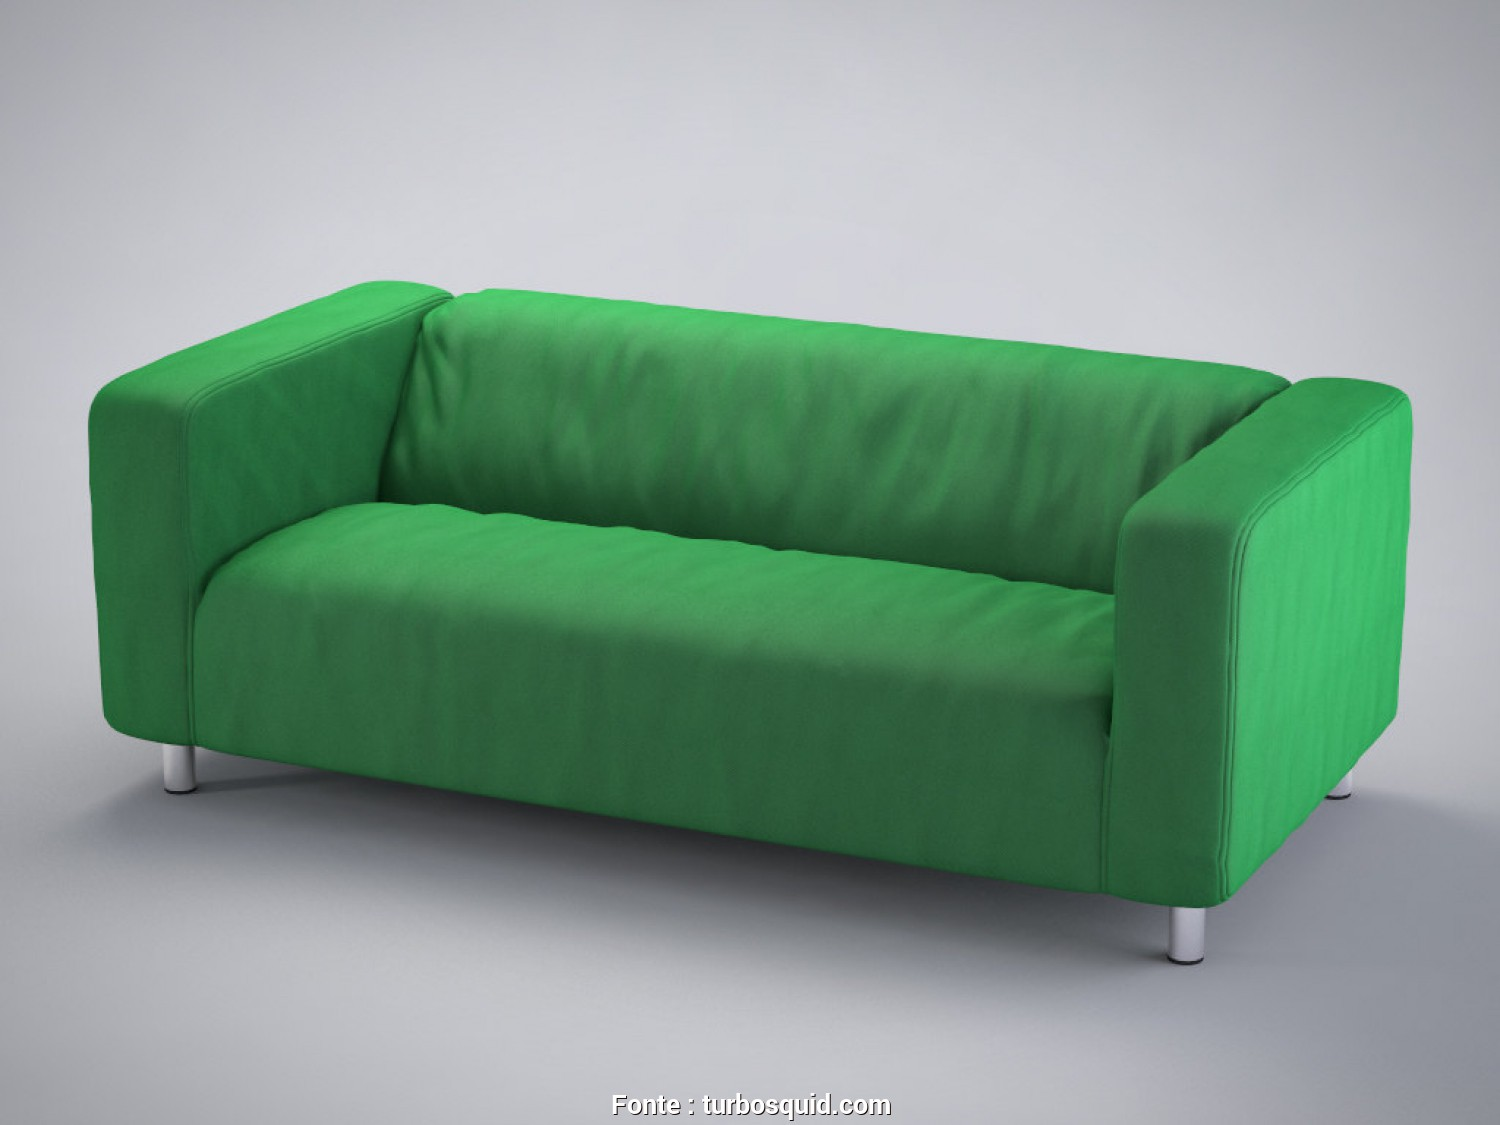 Klippan Ikea.De, Incredibile 3D Model Loveseat Klippan Ikea